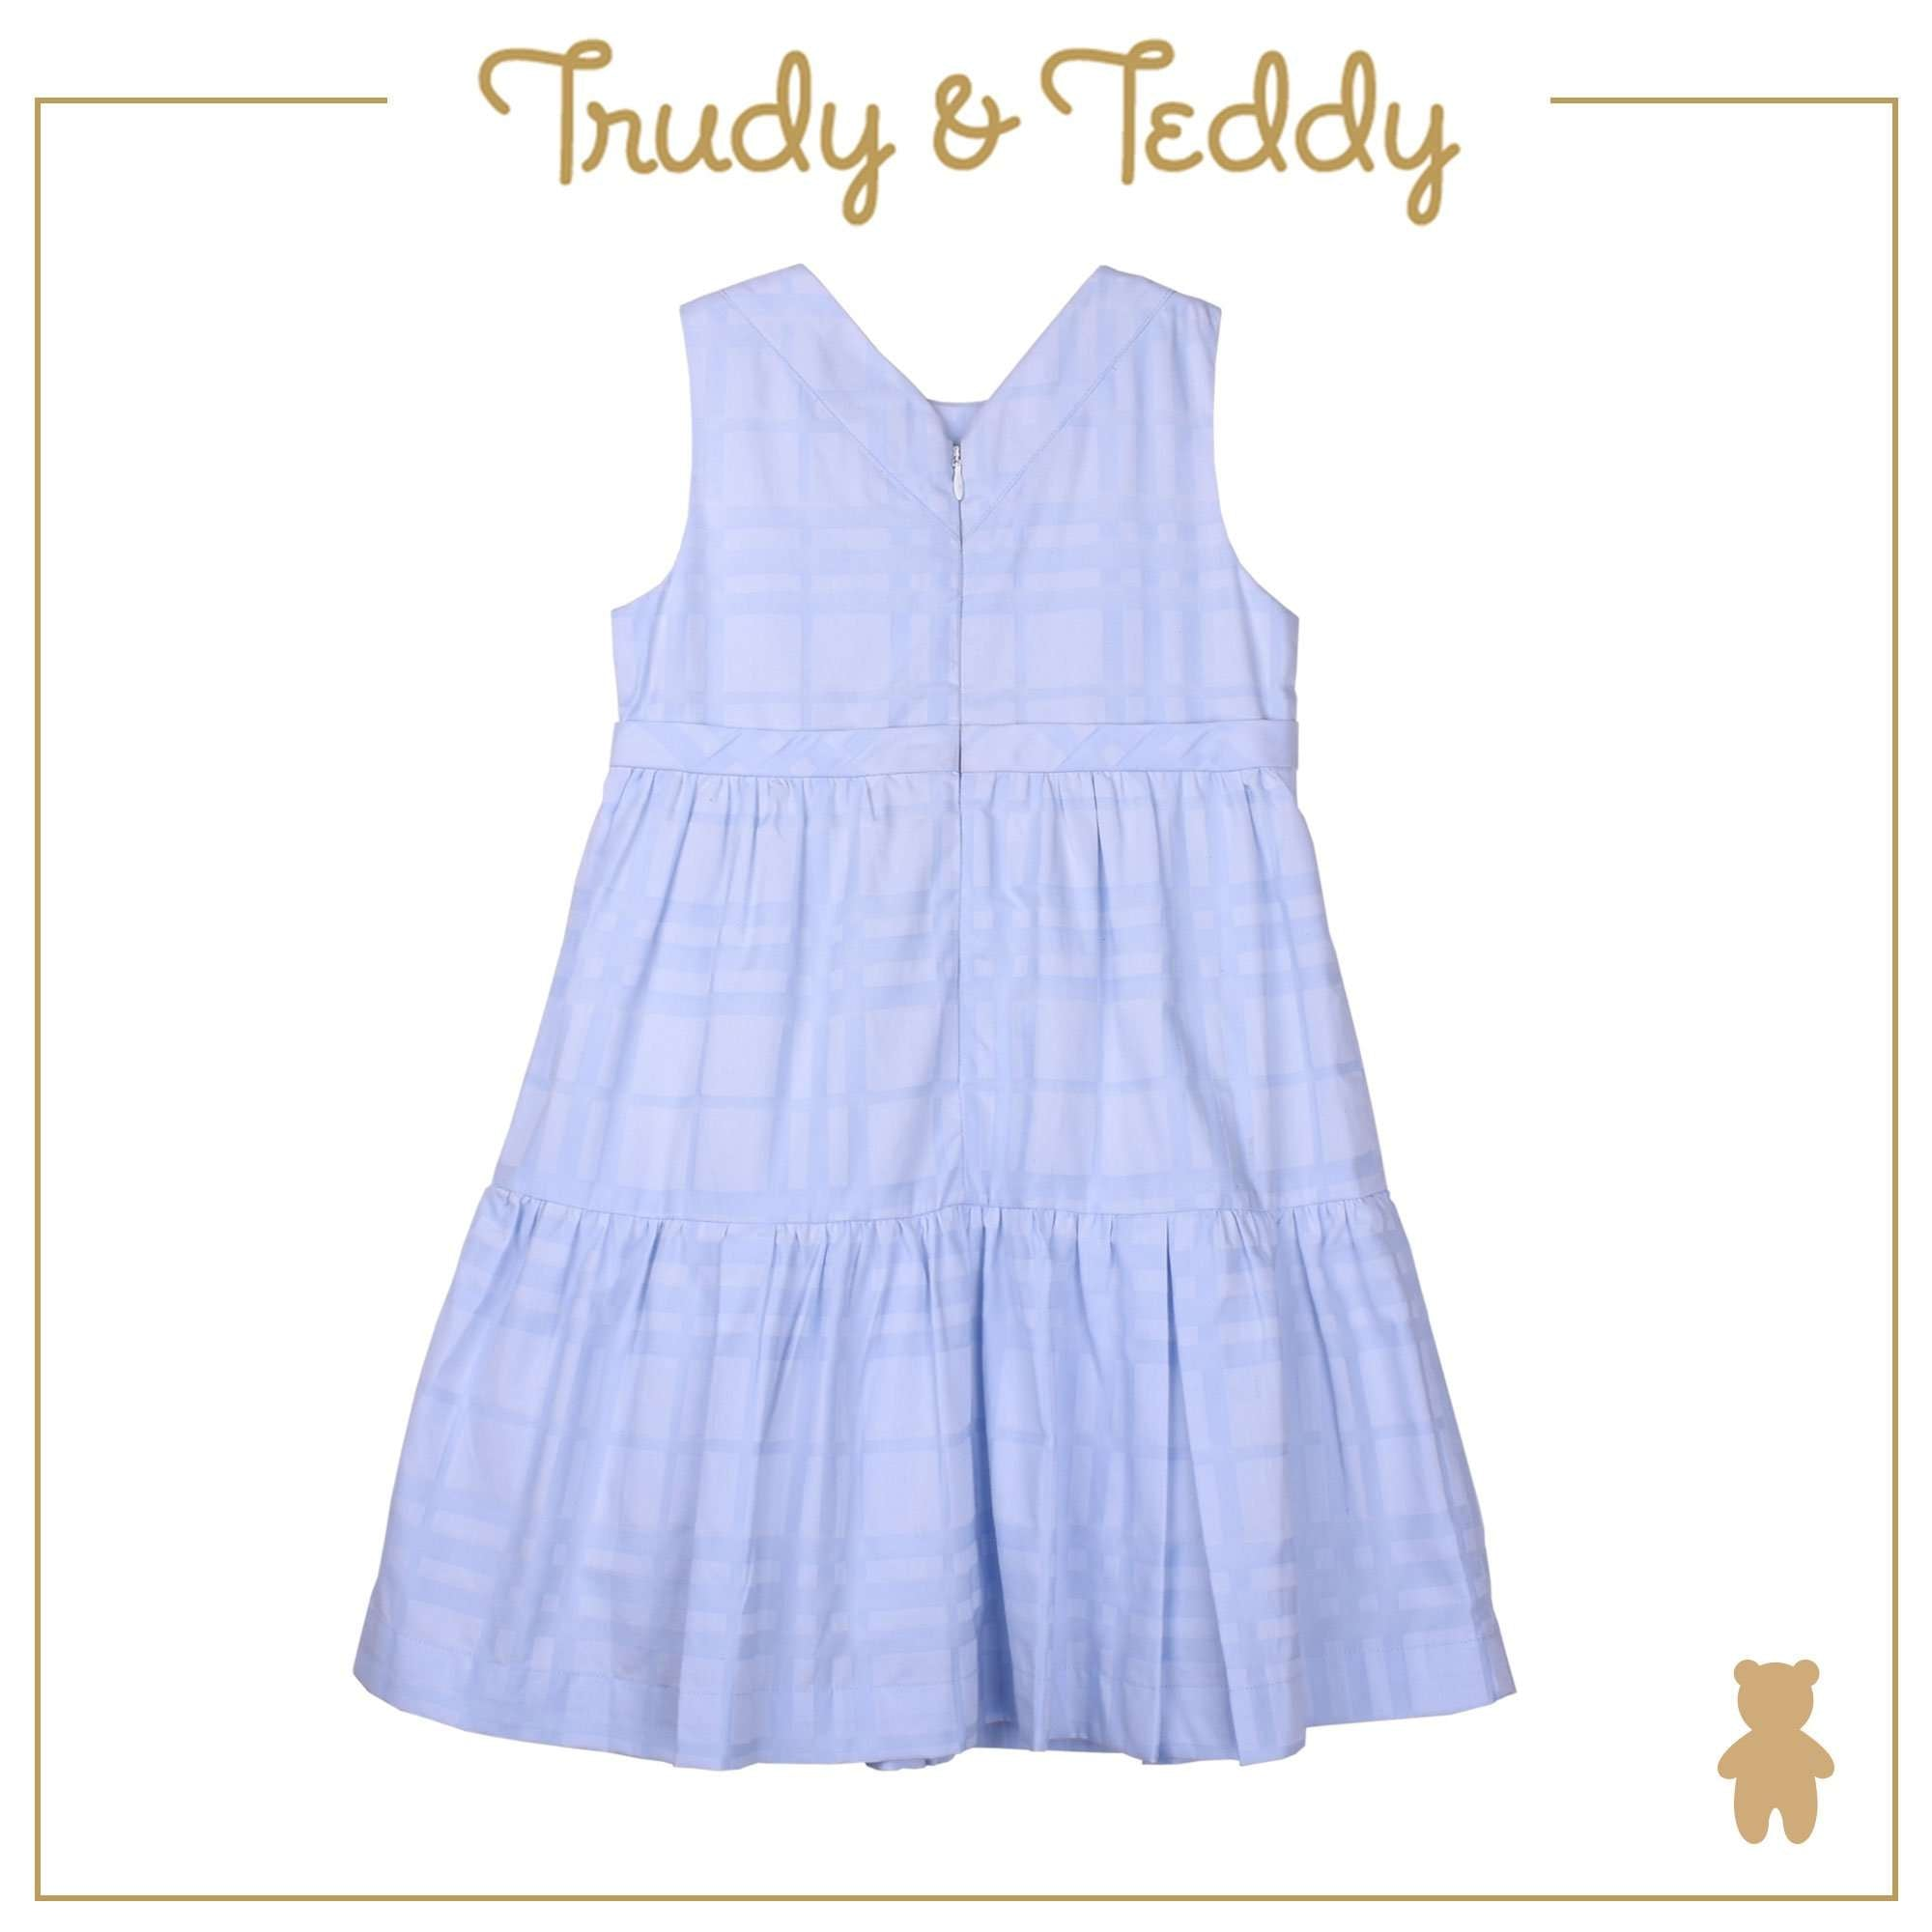 Trudy & Teddy Toddler to Kid Girl Sleeeveless Dress - Light Blue T925002-3142-L1 : Buy Trudy & Teddy online at CMG.MY